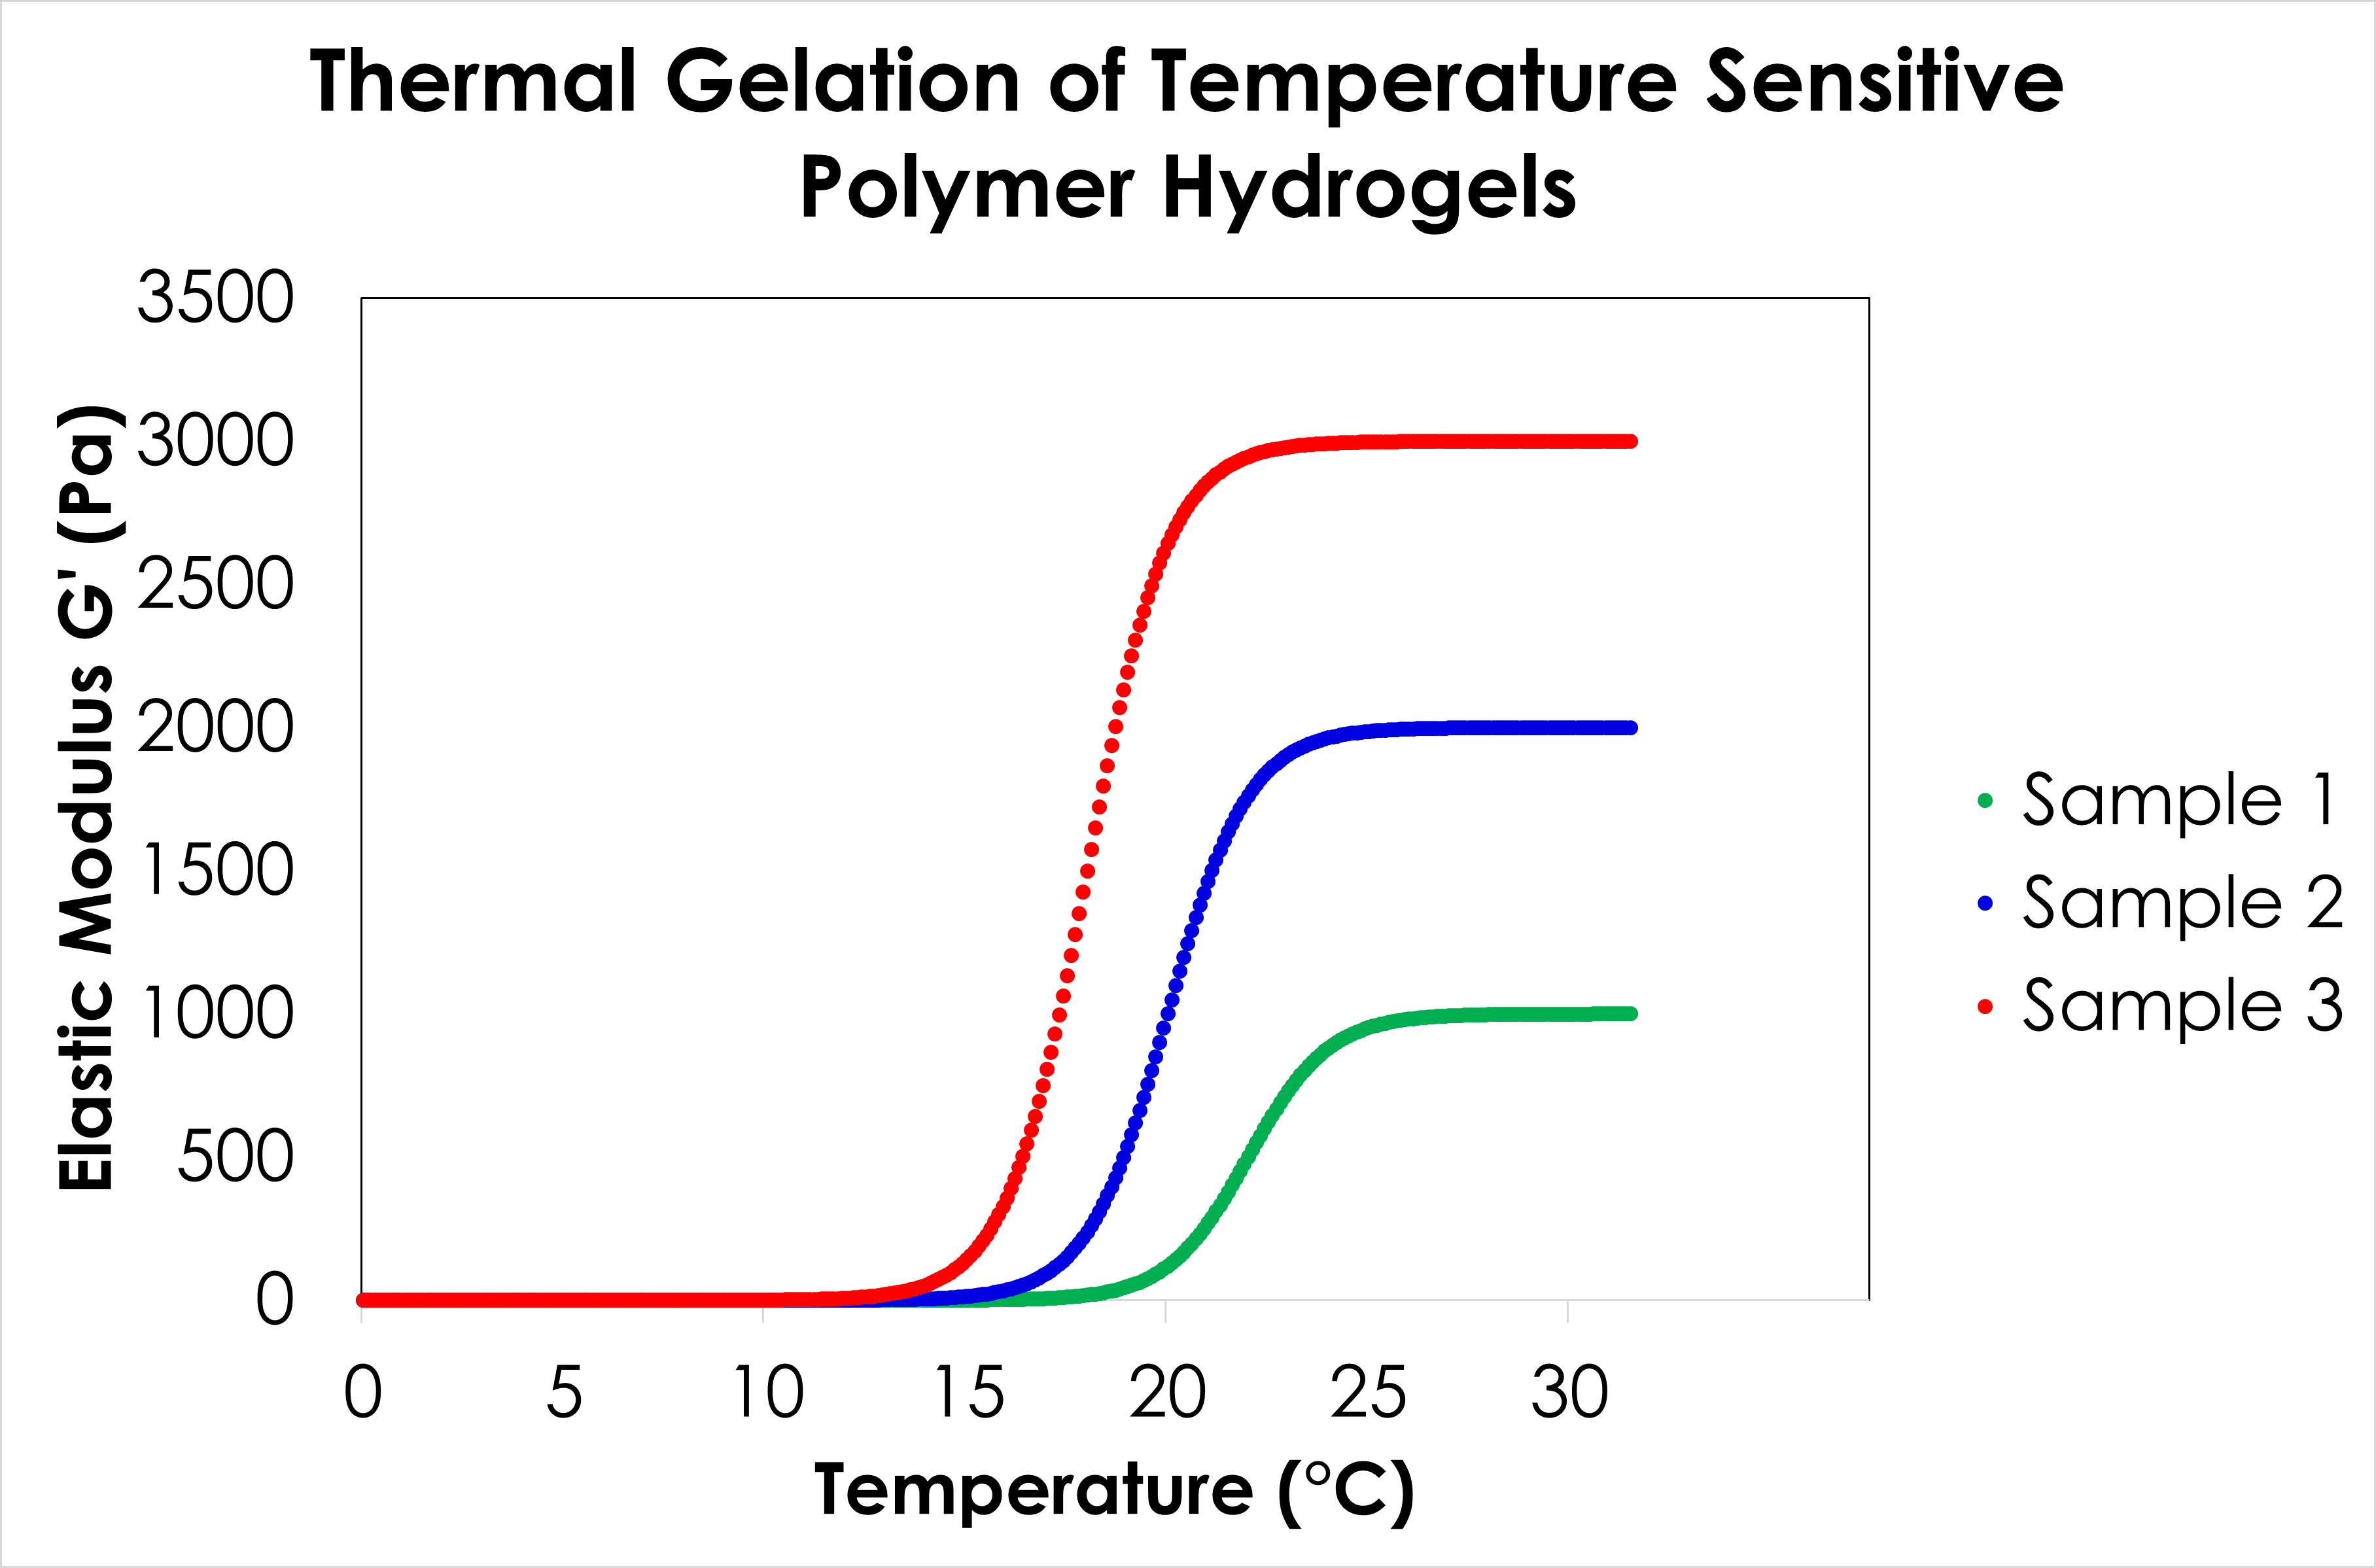 For illustrative purposes only. Temperature Sensitive Polymer Hydrogels